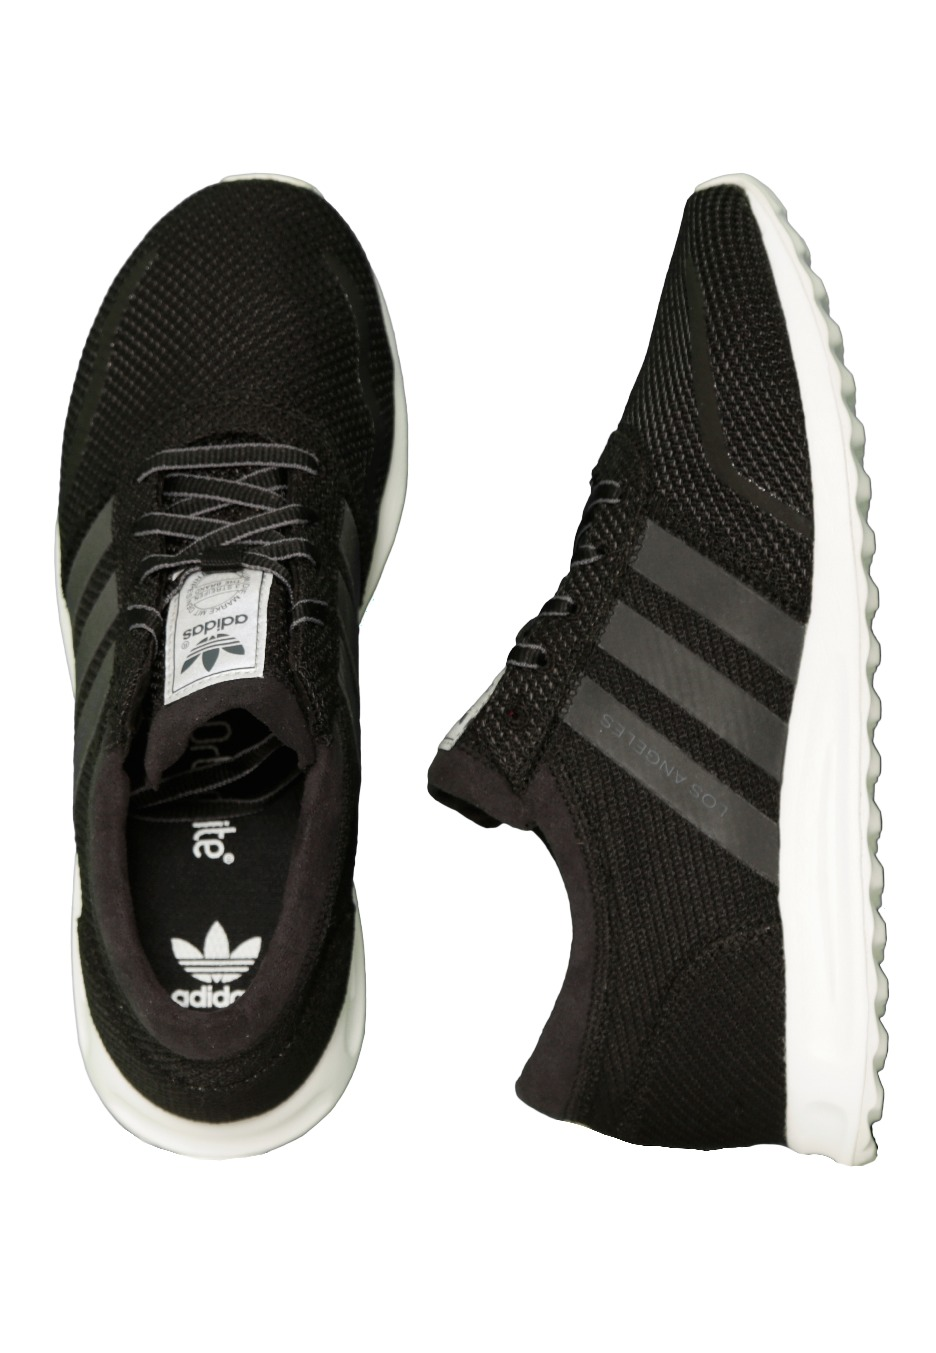 Adidas Shoes For Girls Black And White wallbank-lfc.co.uk